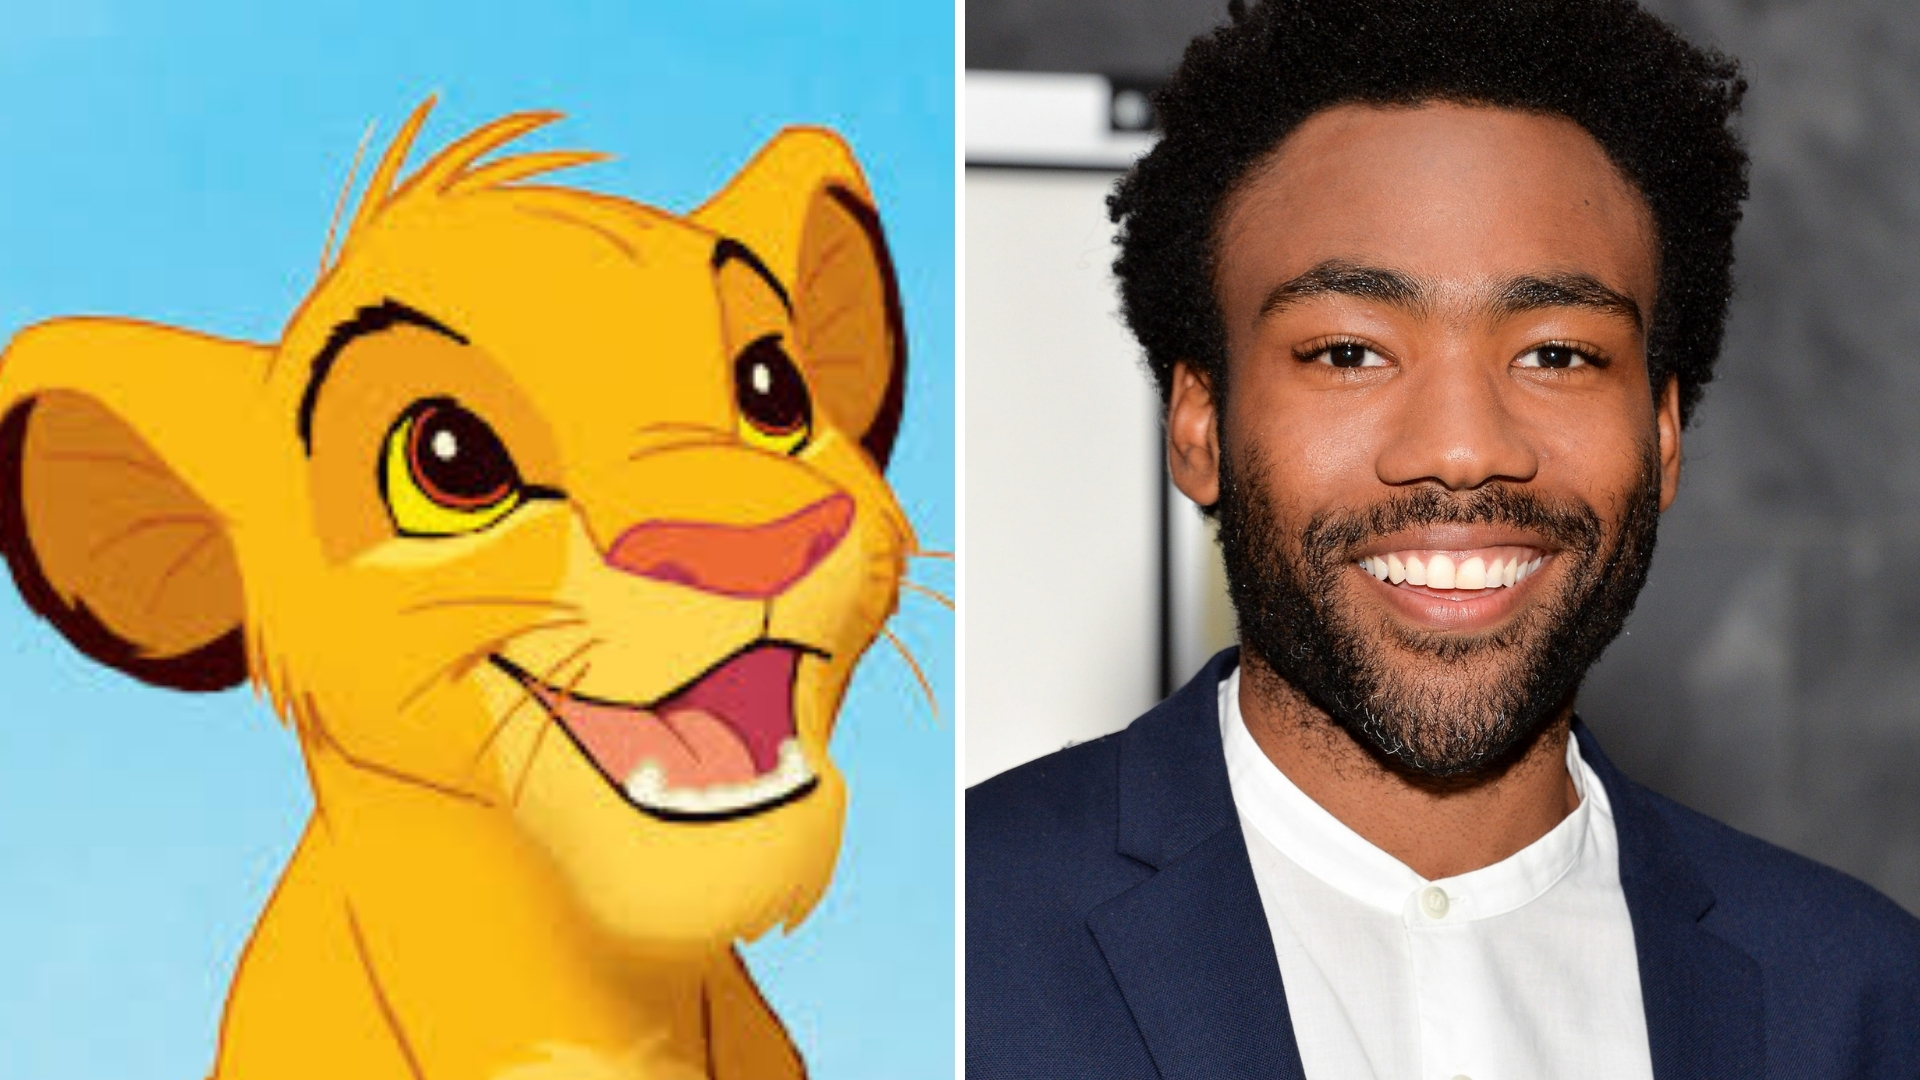 'The Lion King' Official Teaser Trailer (2019) | Donald Glover, Beyoncé